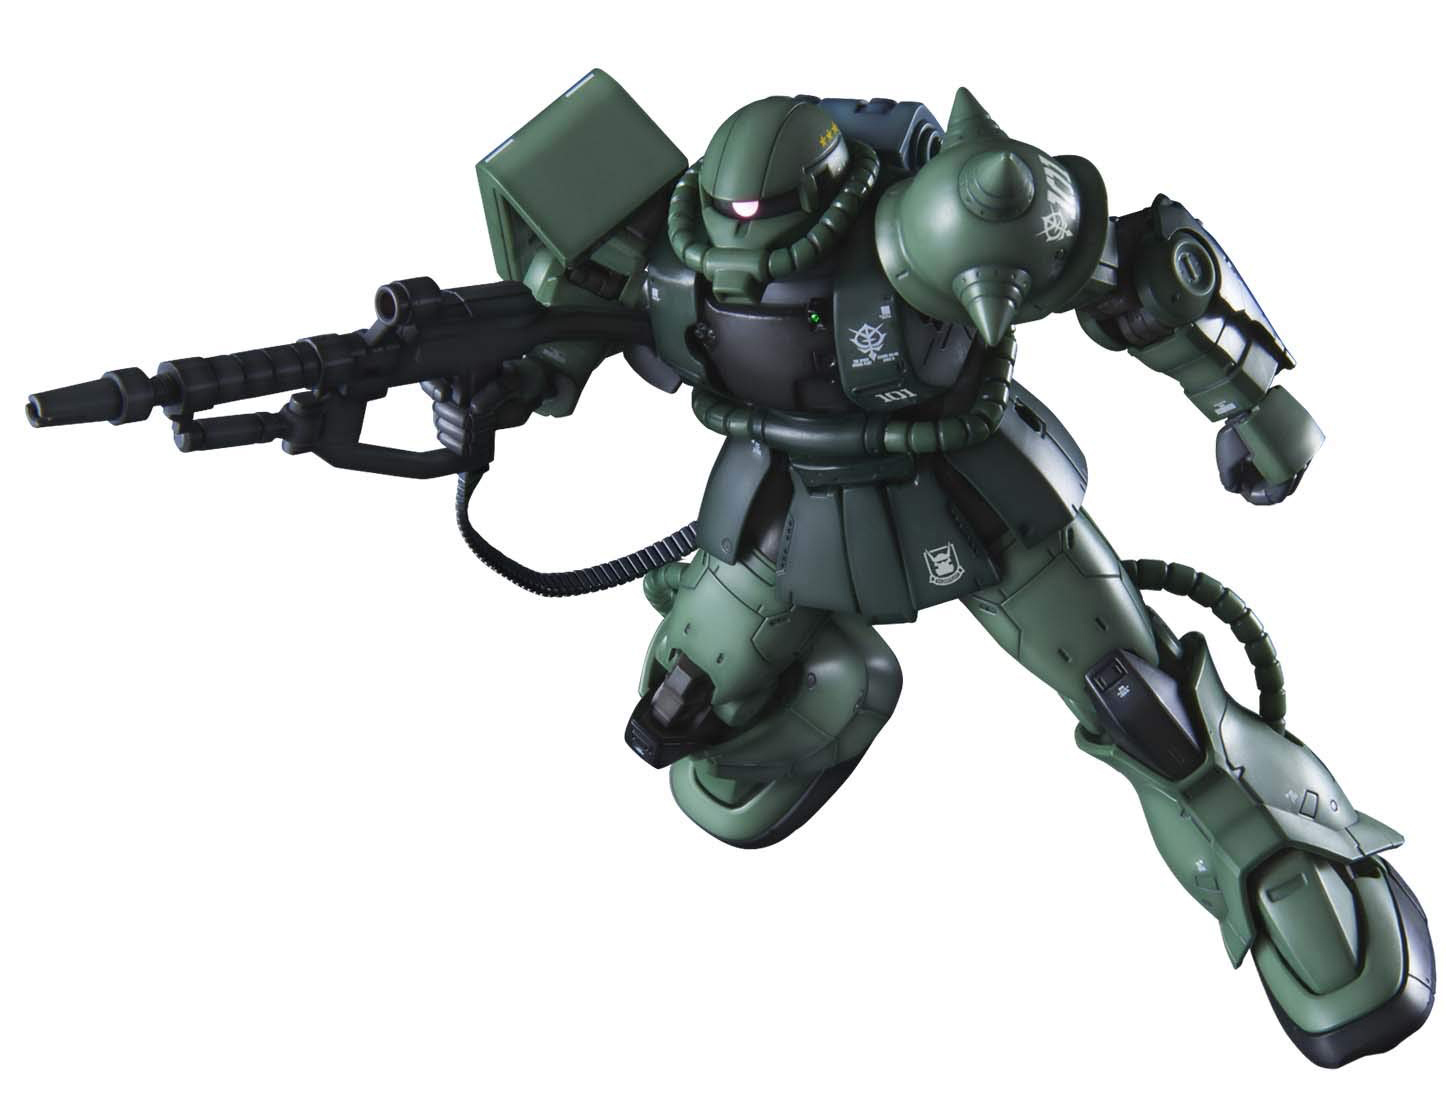 Gundam High Grade Gundam The Origin 1/144 Scale Model Kit: #025 MS-06C-6/R6 Zaku II Type C-6/R6